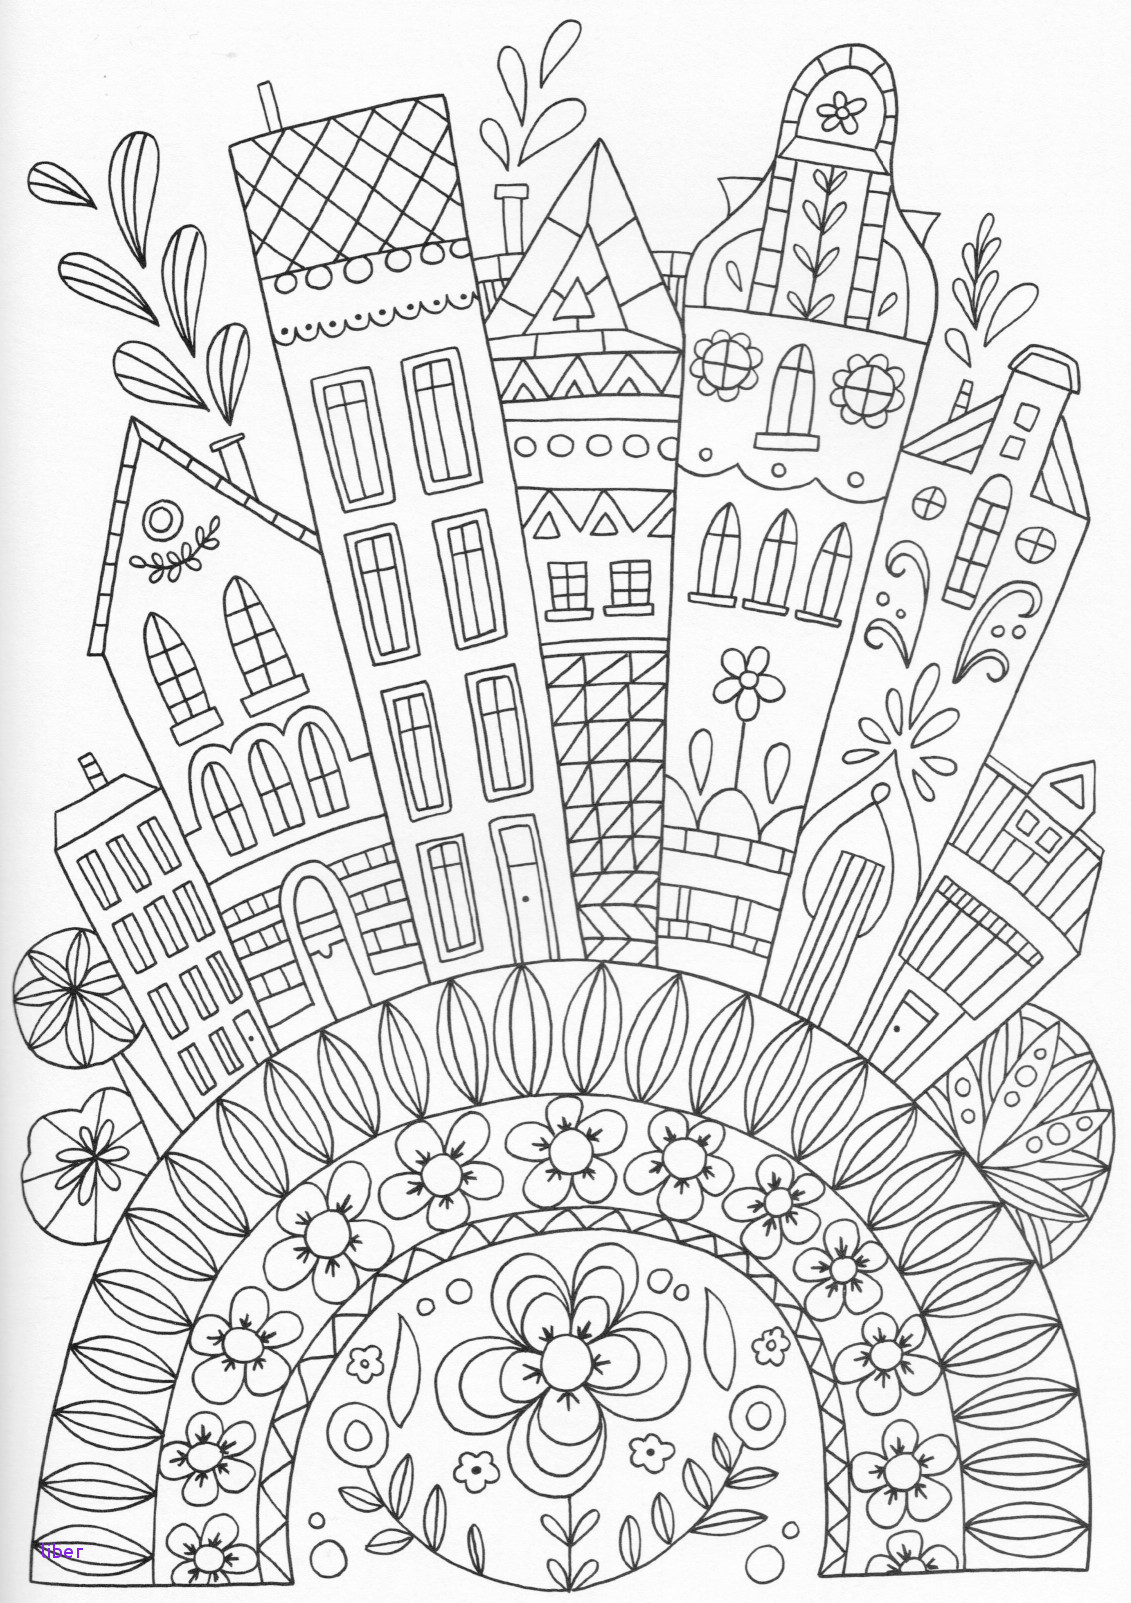 Mary Engelbreit Coloring Pages Printable | Free Coloring ...